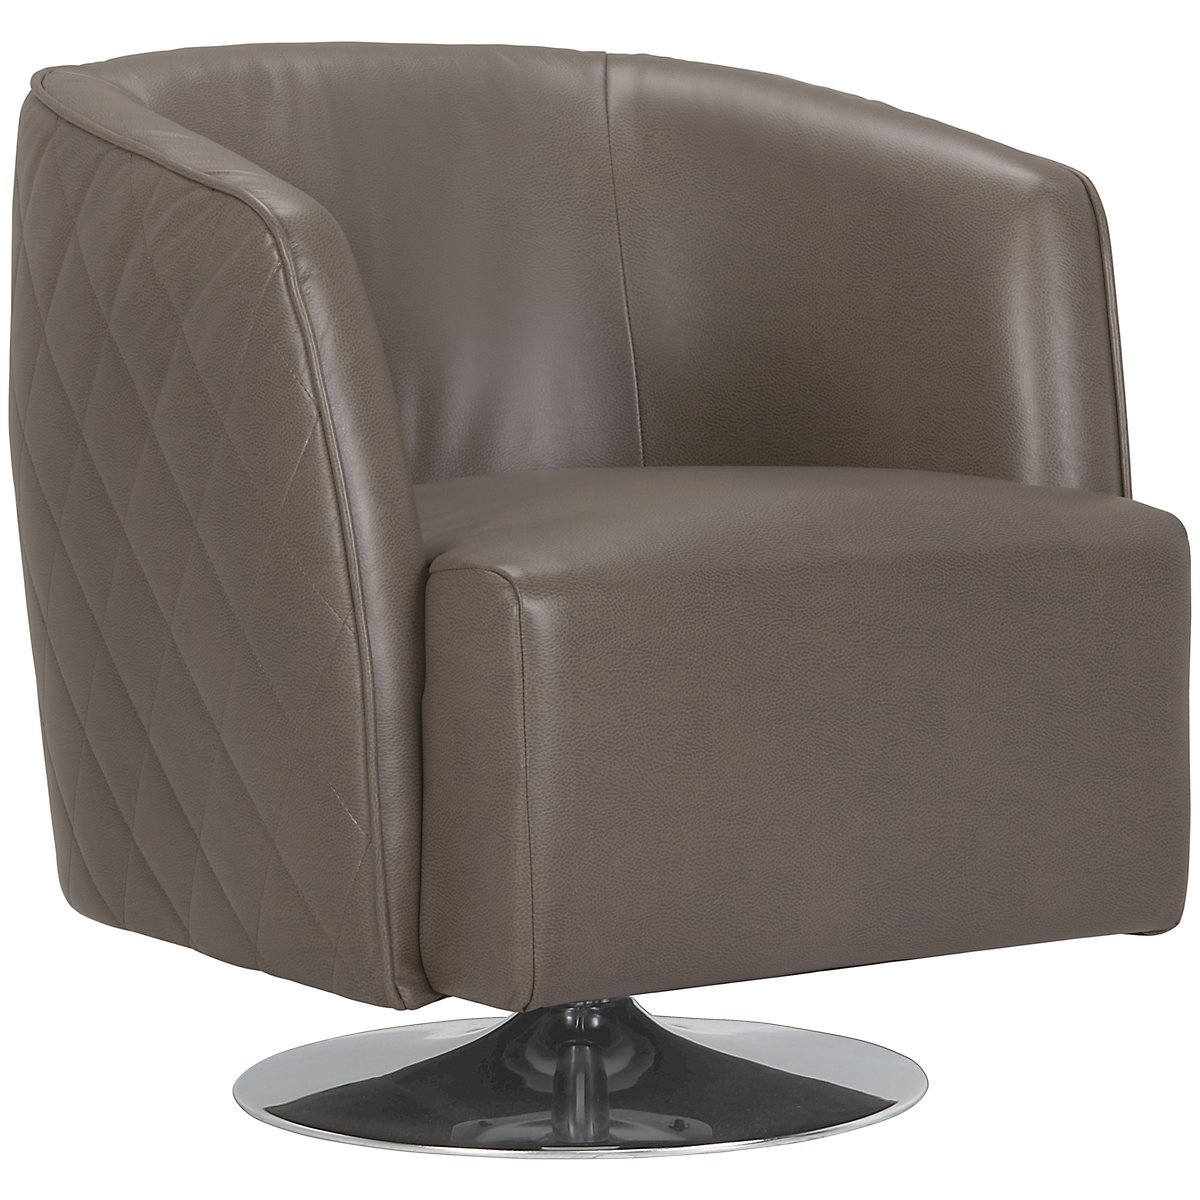 City Furniture Loki Dk Gray Microfiber Swivel Accent Chair